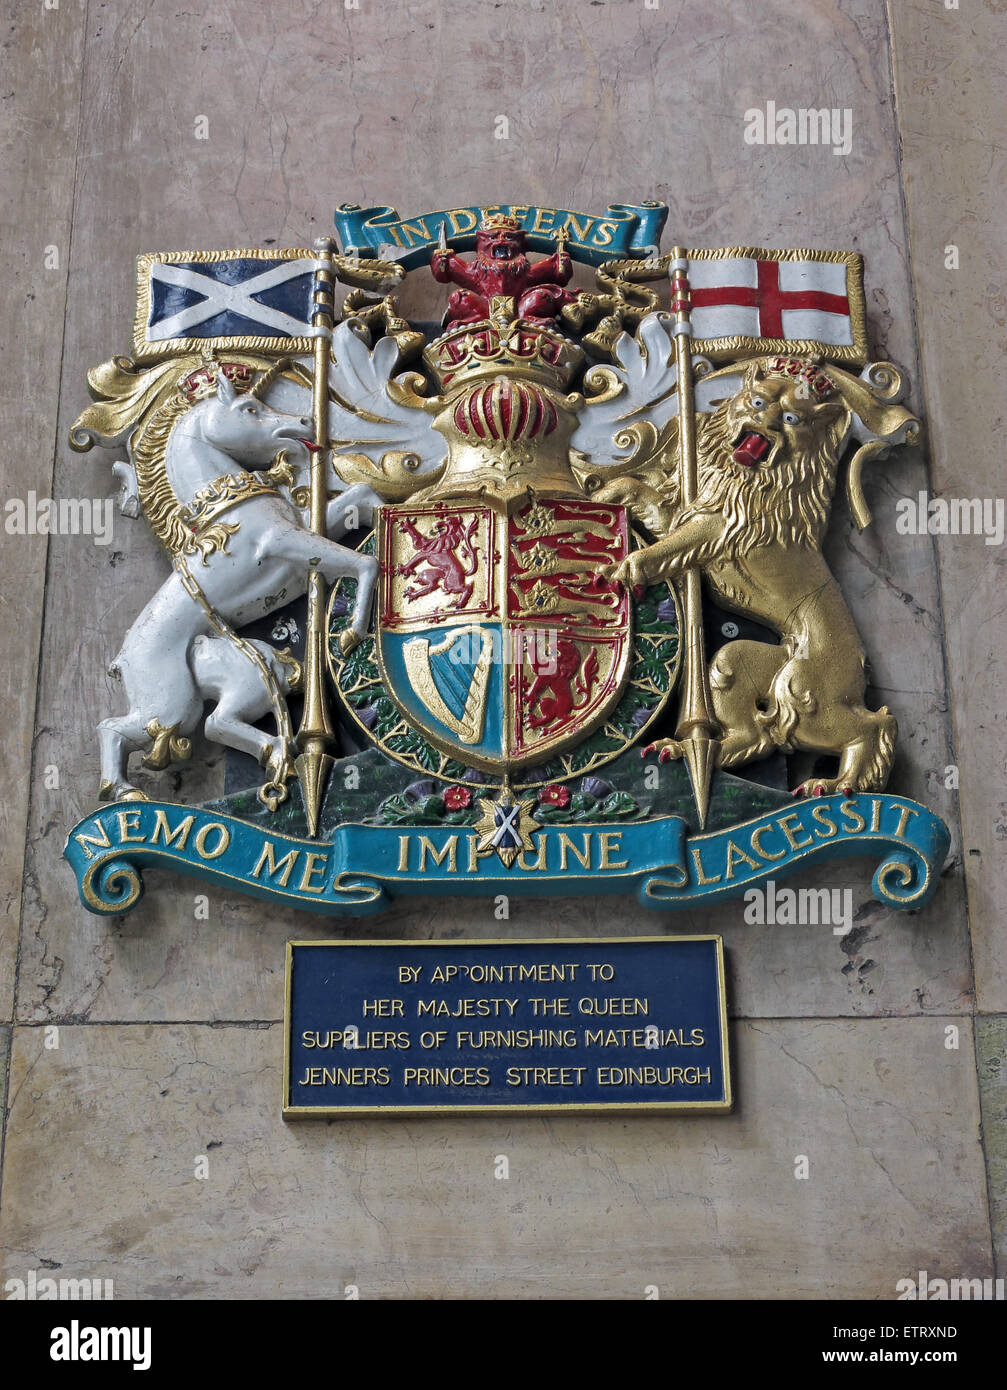 Famous,stores,scottish,scotch,shops,house,of,fraser,Scotland,Scots,retail,oldest,independent,Charles,Jenner,and,Charles,Kennington,sell,selling,goods,tourist,shopping,architect,William,Hamilton,Beattie,designated,as,a,category,A,listed,building,grade1,Harrods,of,the,North,Royal,Warrant,appointment,GoTonySmith,pate,de,foie,gras,boycott,by,the,Duke,and,Duchess,of,Hamilton,48,Princes,St,Edinburgh,Scotland,UK,EH2 2YJ,EH22yj,plaque,crest,Buy Pictures of,Buy Images Of